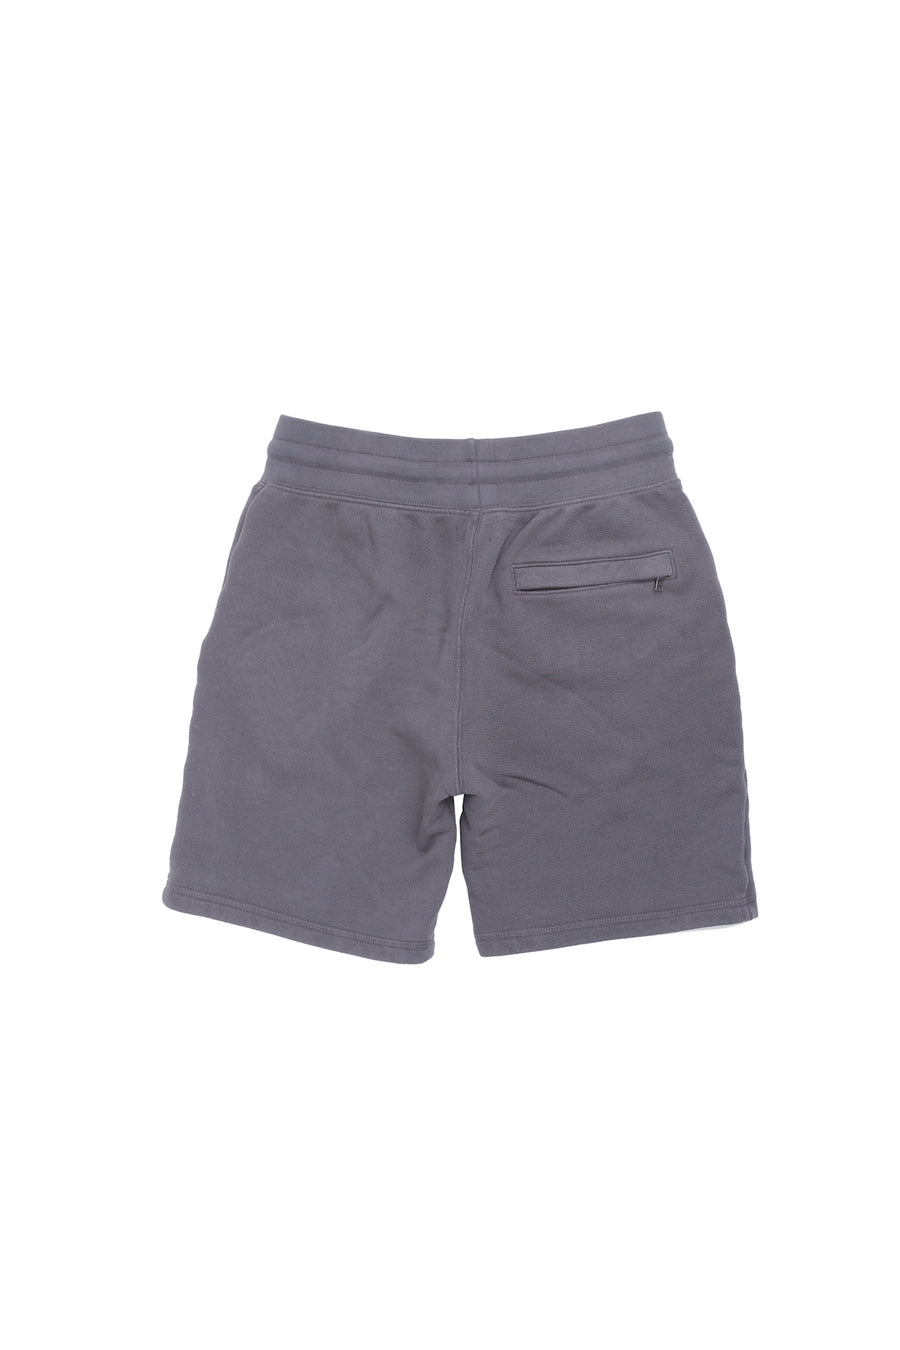 French Terry Fitted Shorts